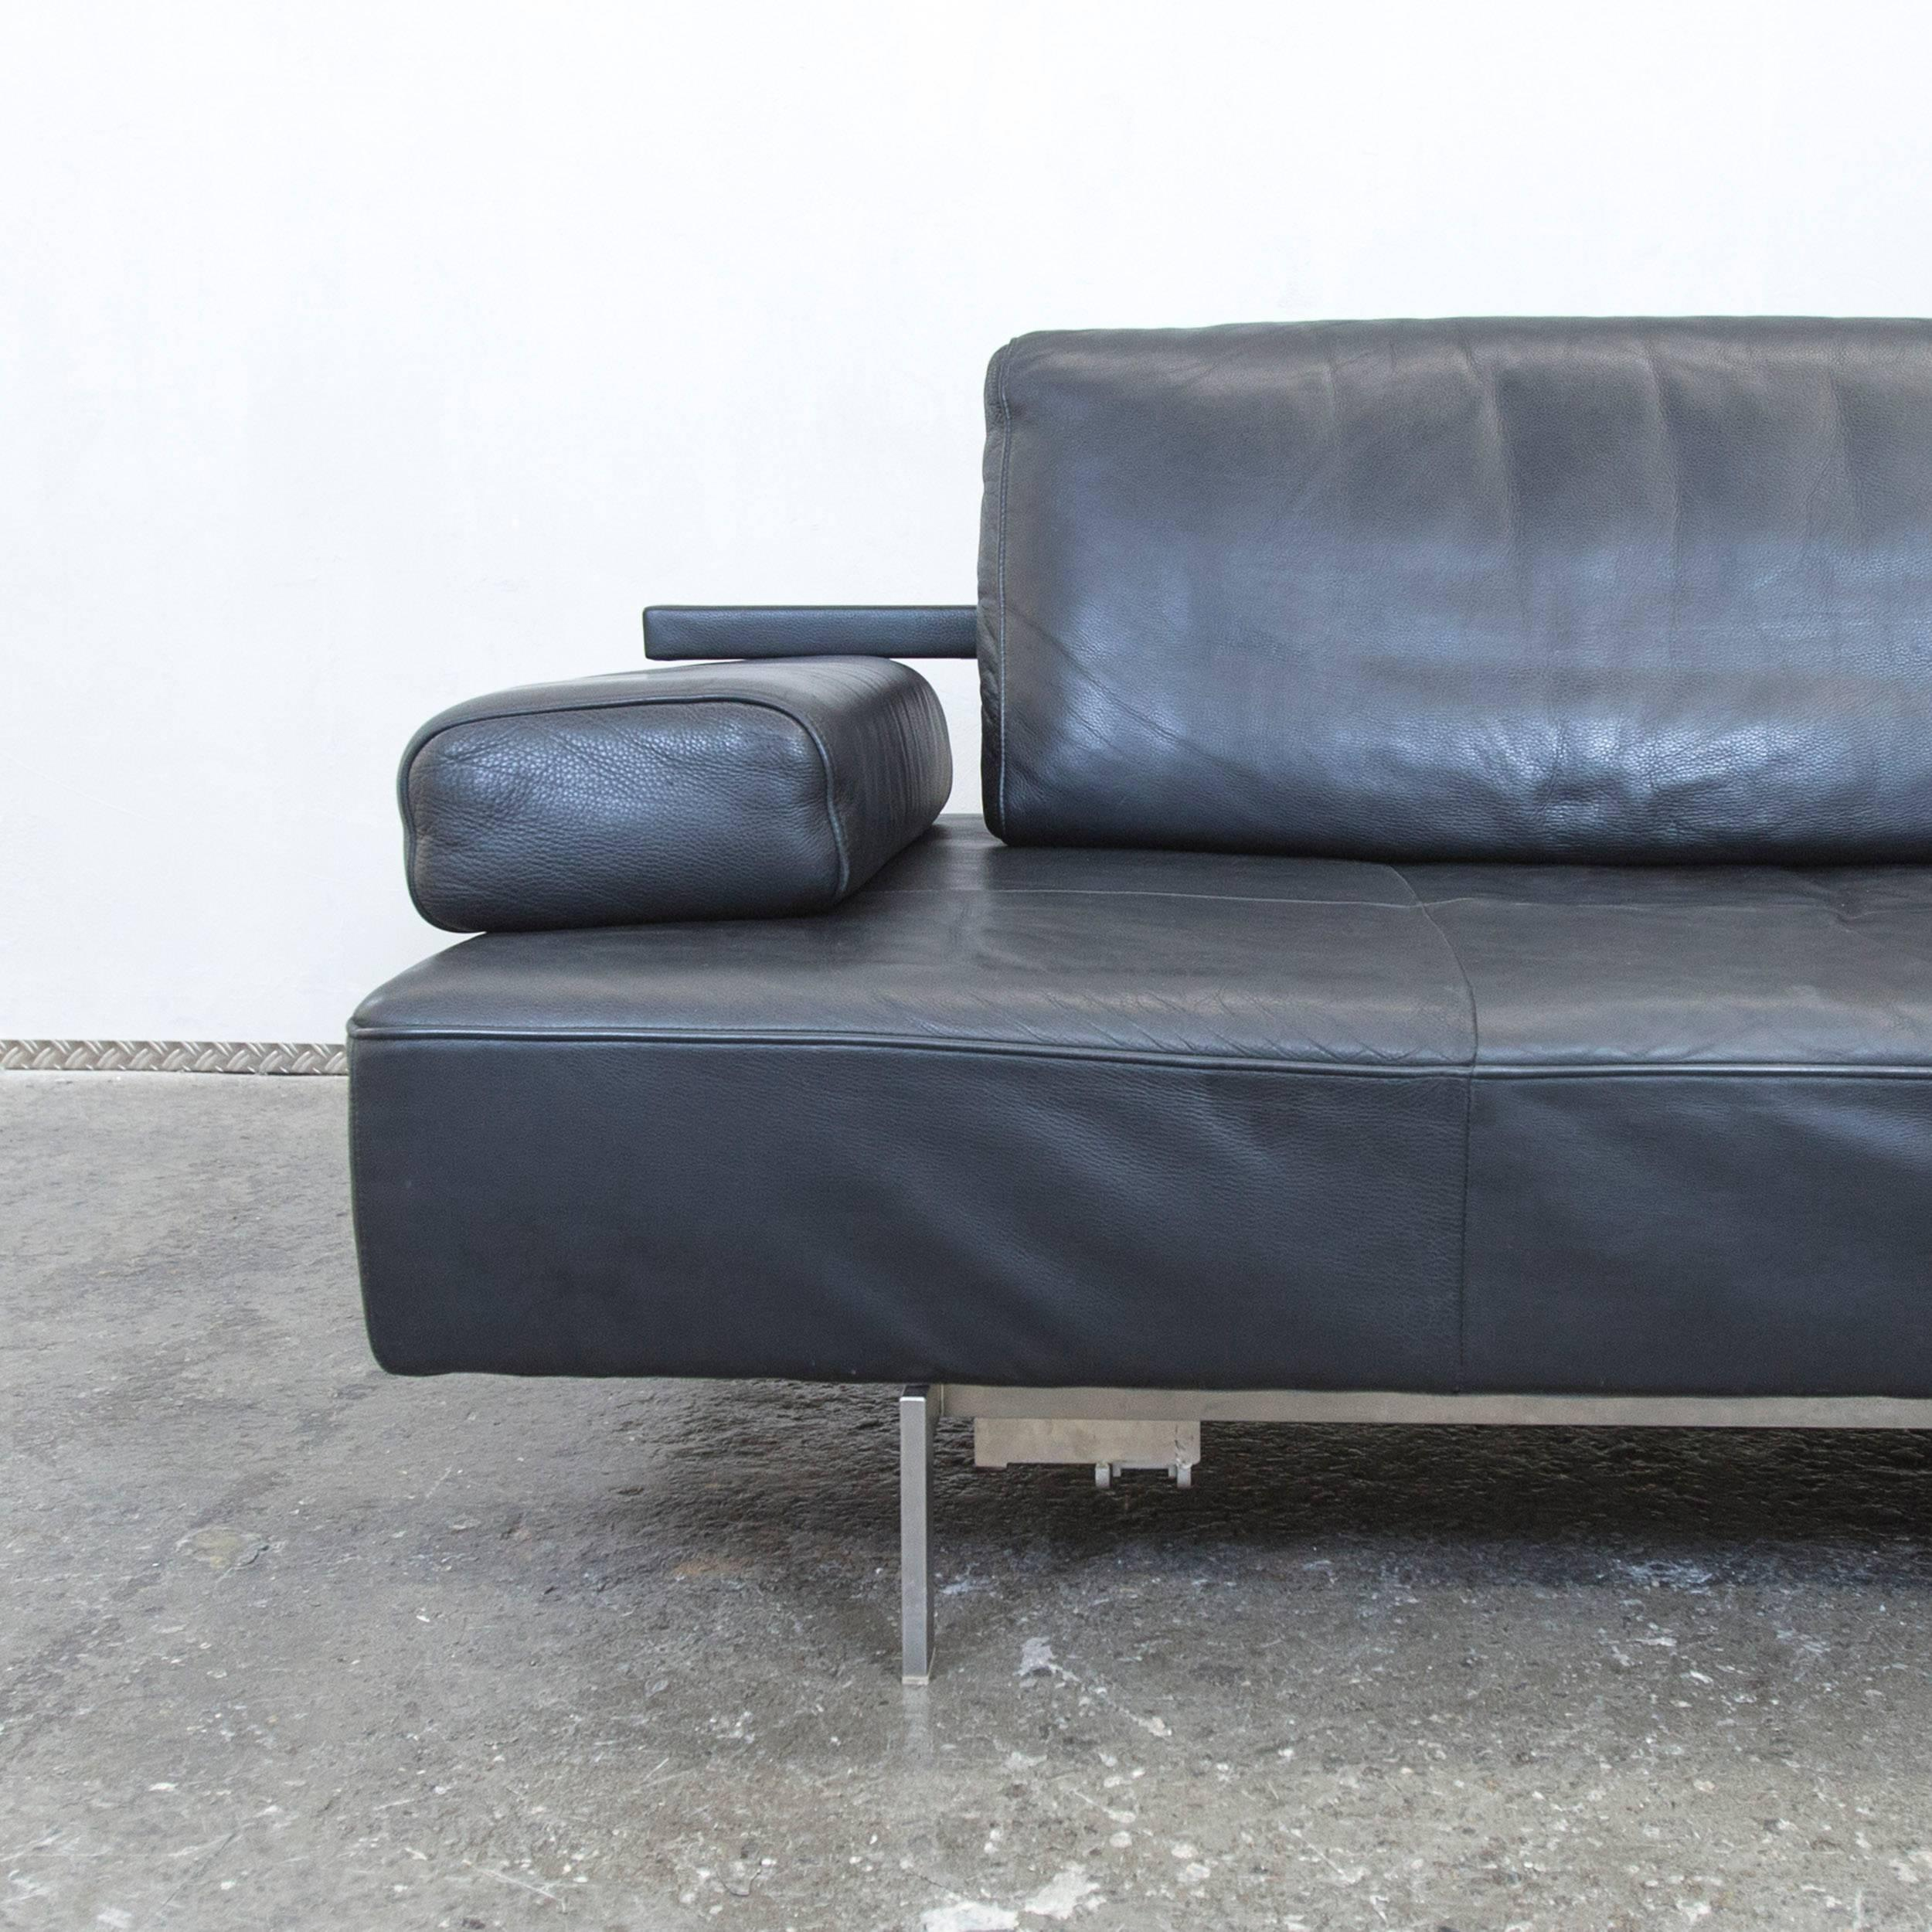 Rolf benz sofa leder rolf benz sofa leder with rolf benz for Couch benz